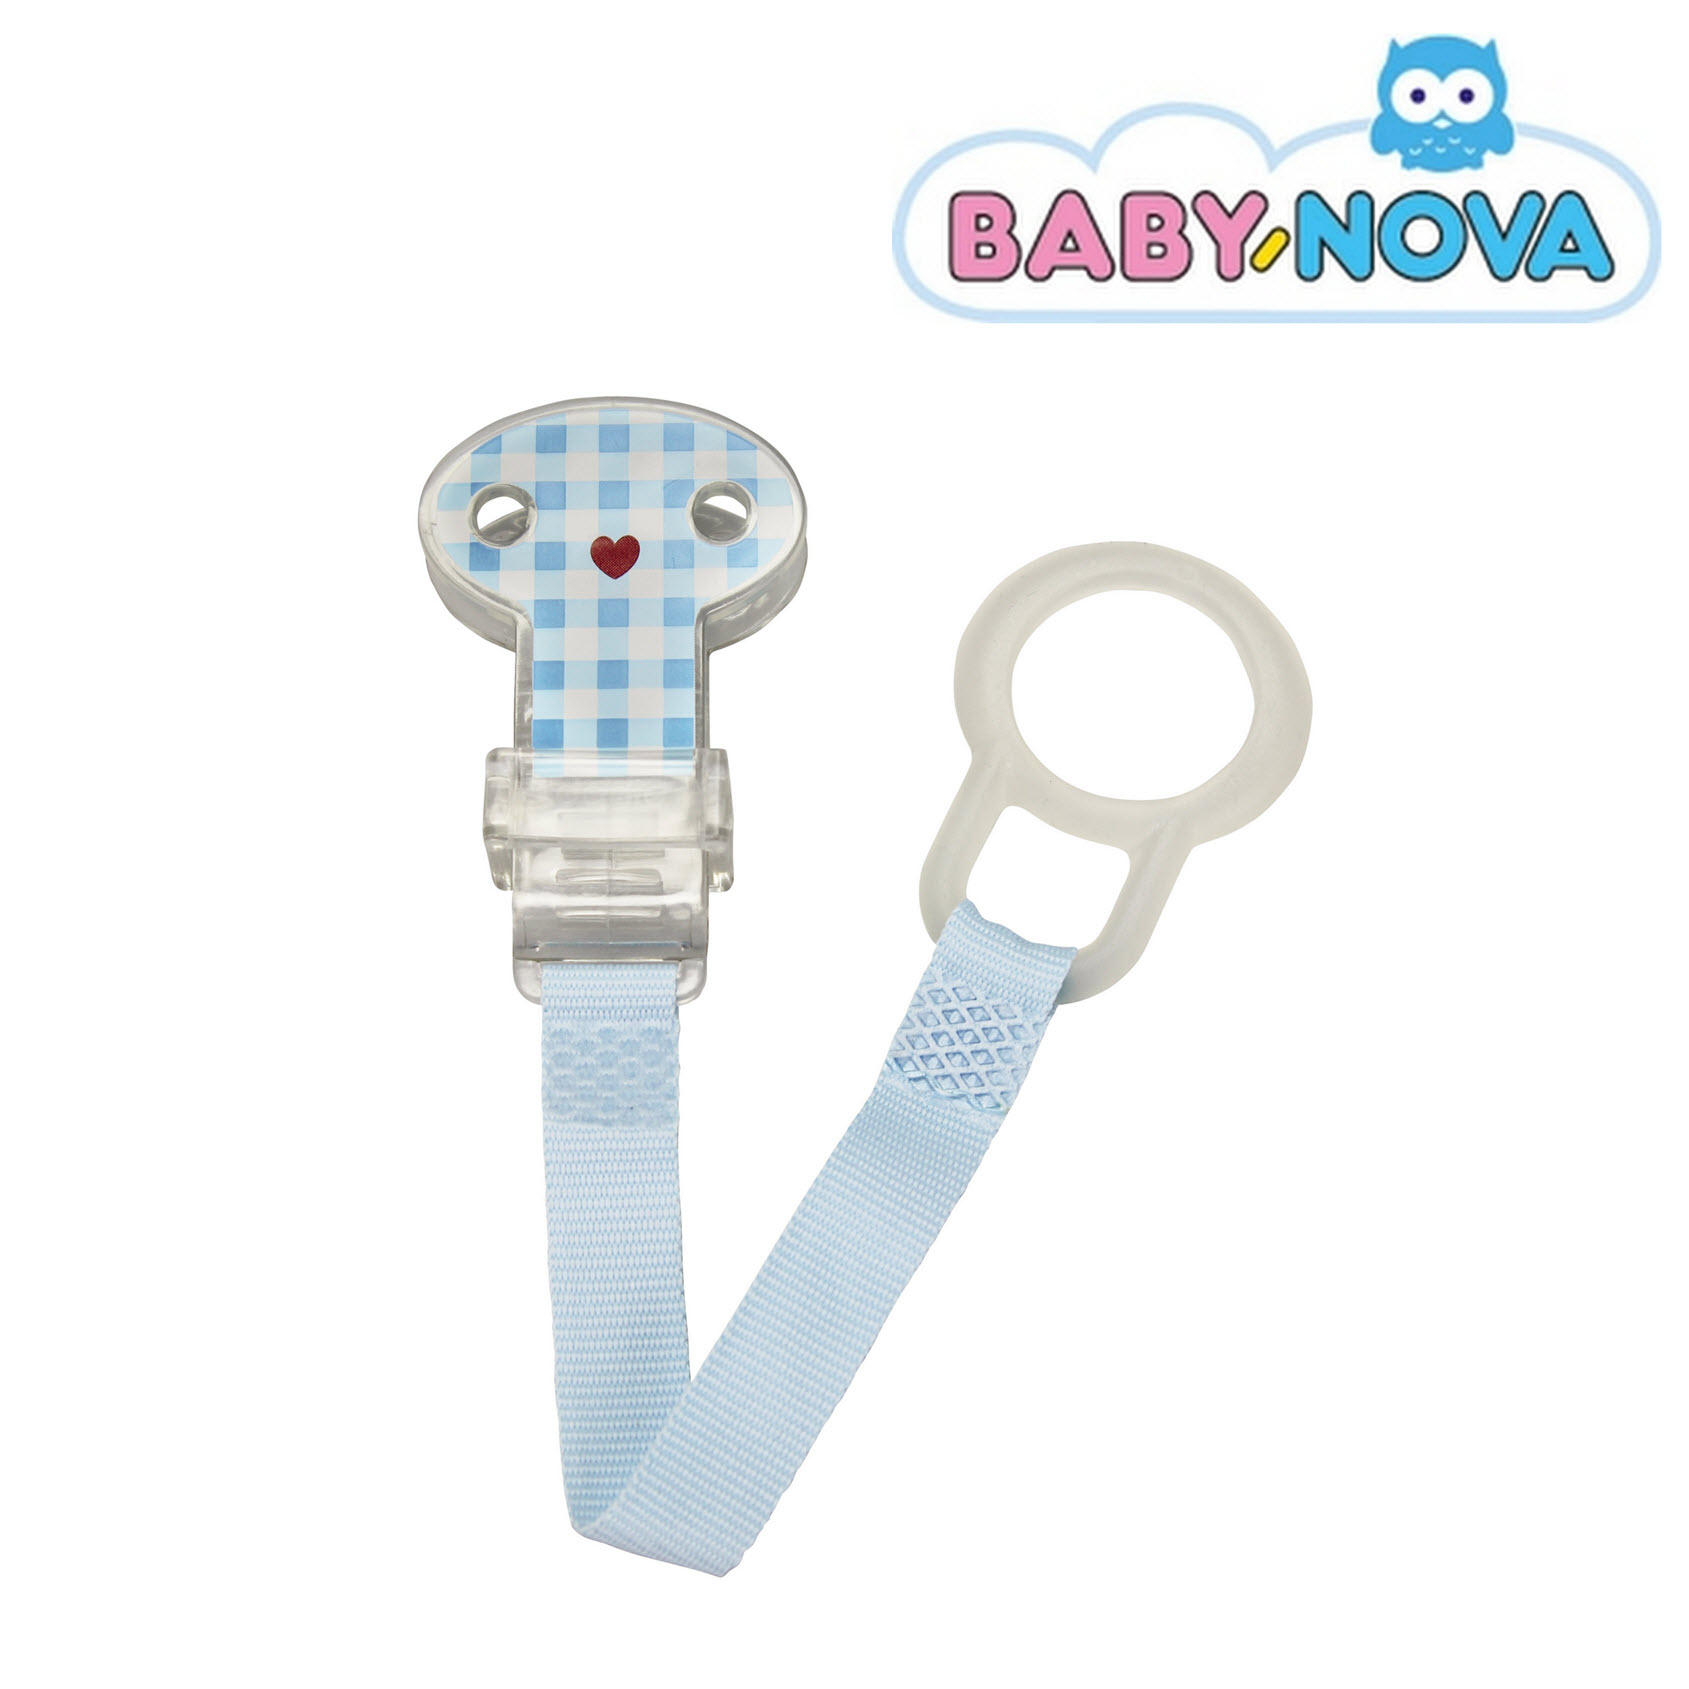 Baby Nova Pacifier Holder - Blue Checked